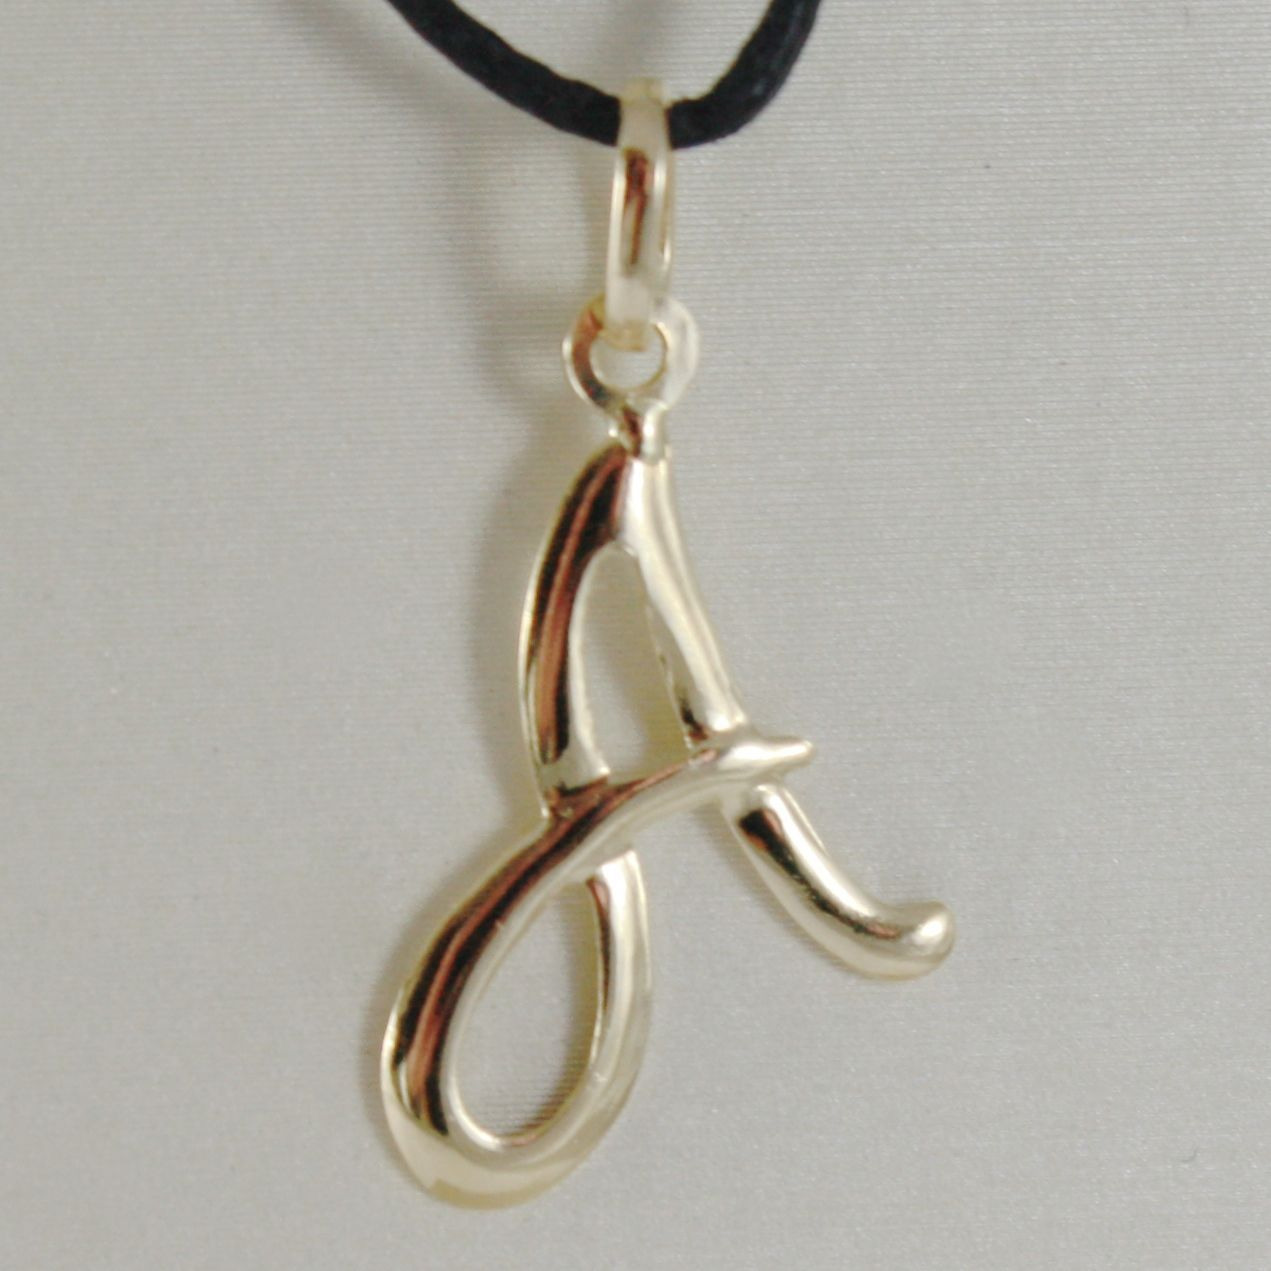 PENDANT SHEET YELLOW GOLD 18K WITH LETTER INITIAL AND CORD BLACK WAXED